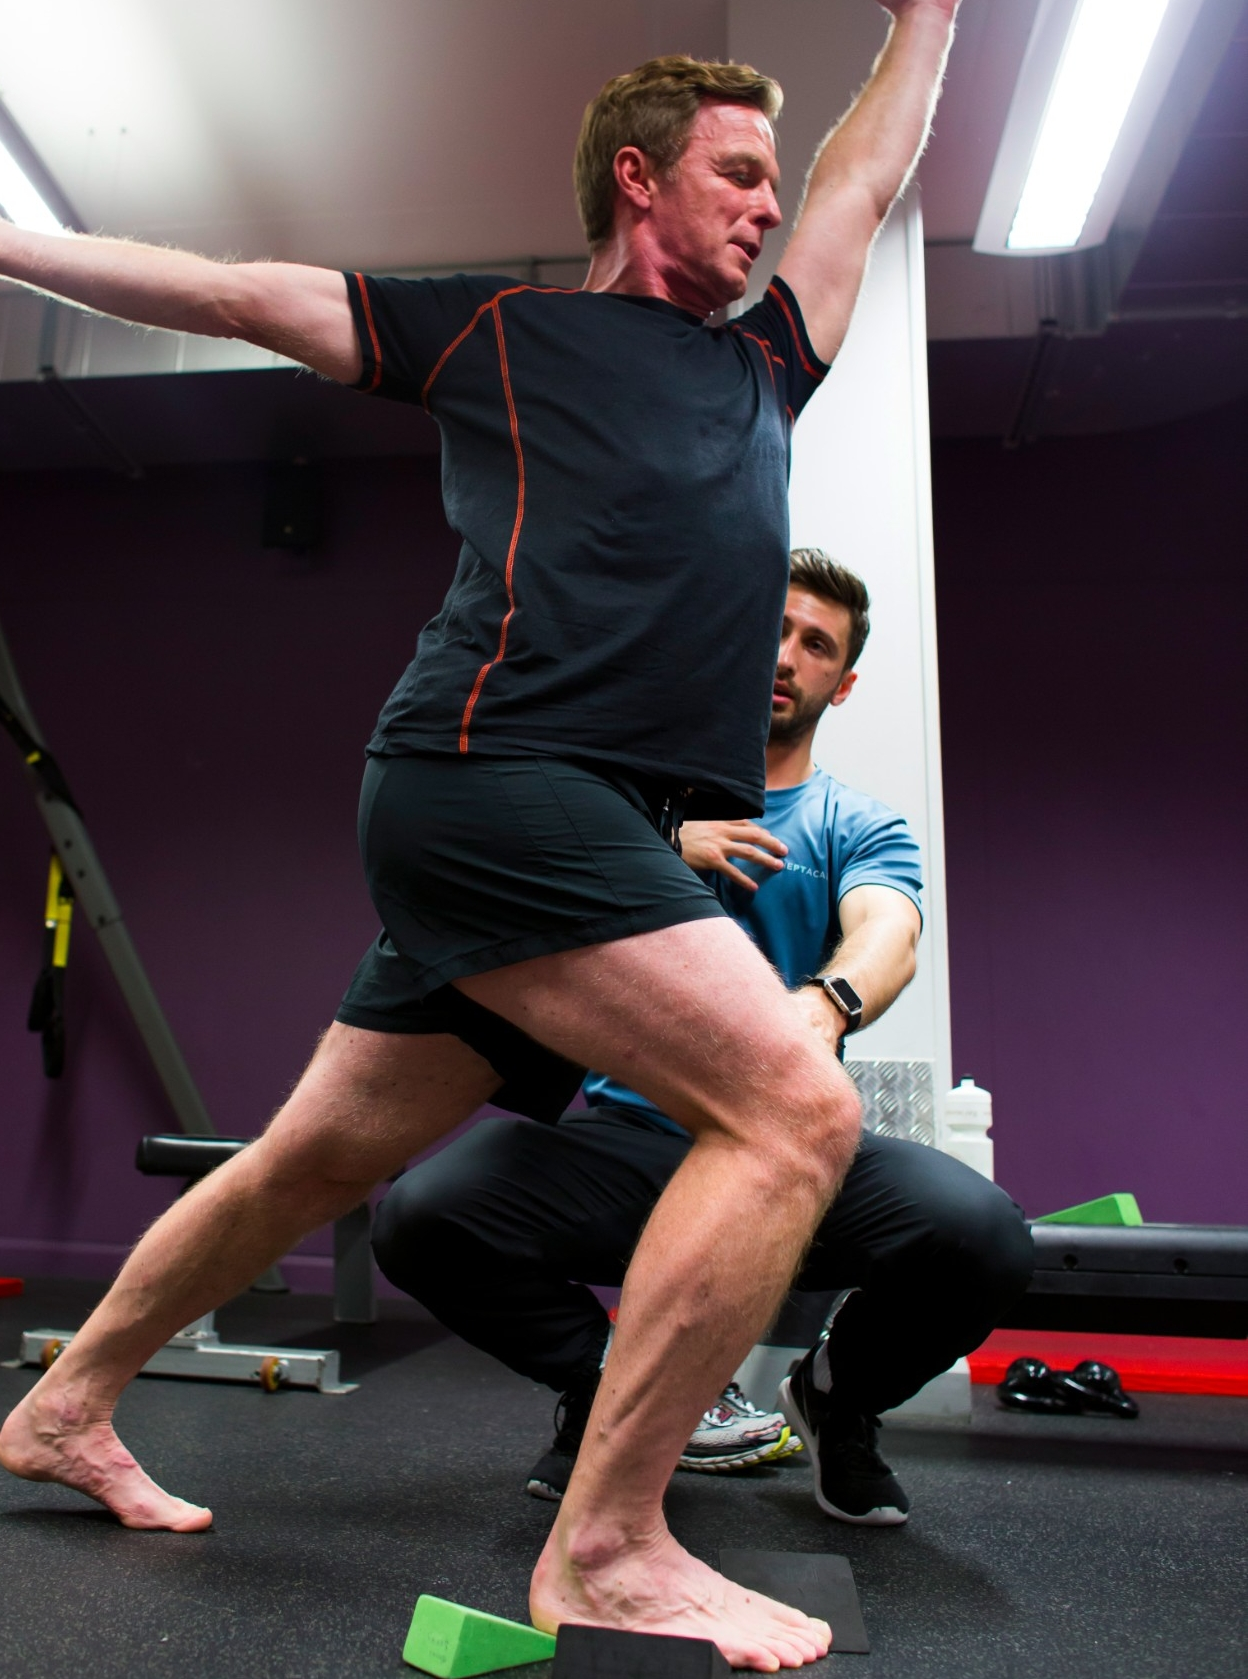 The latest Anatomy in Motion techniques allow me to gain results where other methods may have failed and to create lifelong change for my clients.Look after your body and your body will look after you.Want to know more about James? Send him a message. -